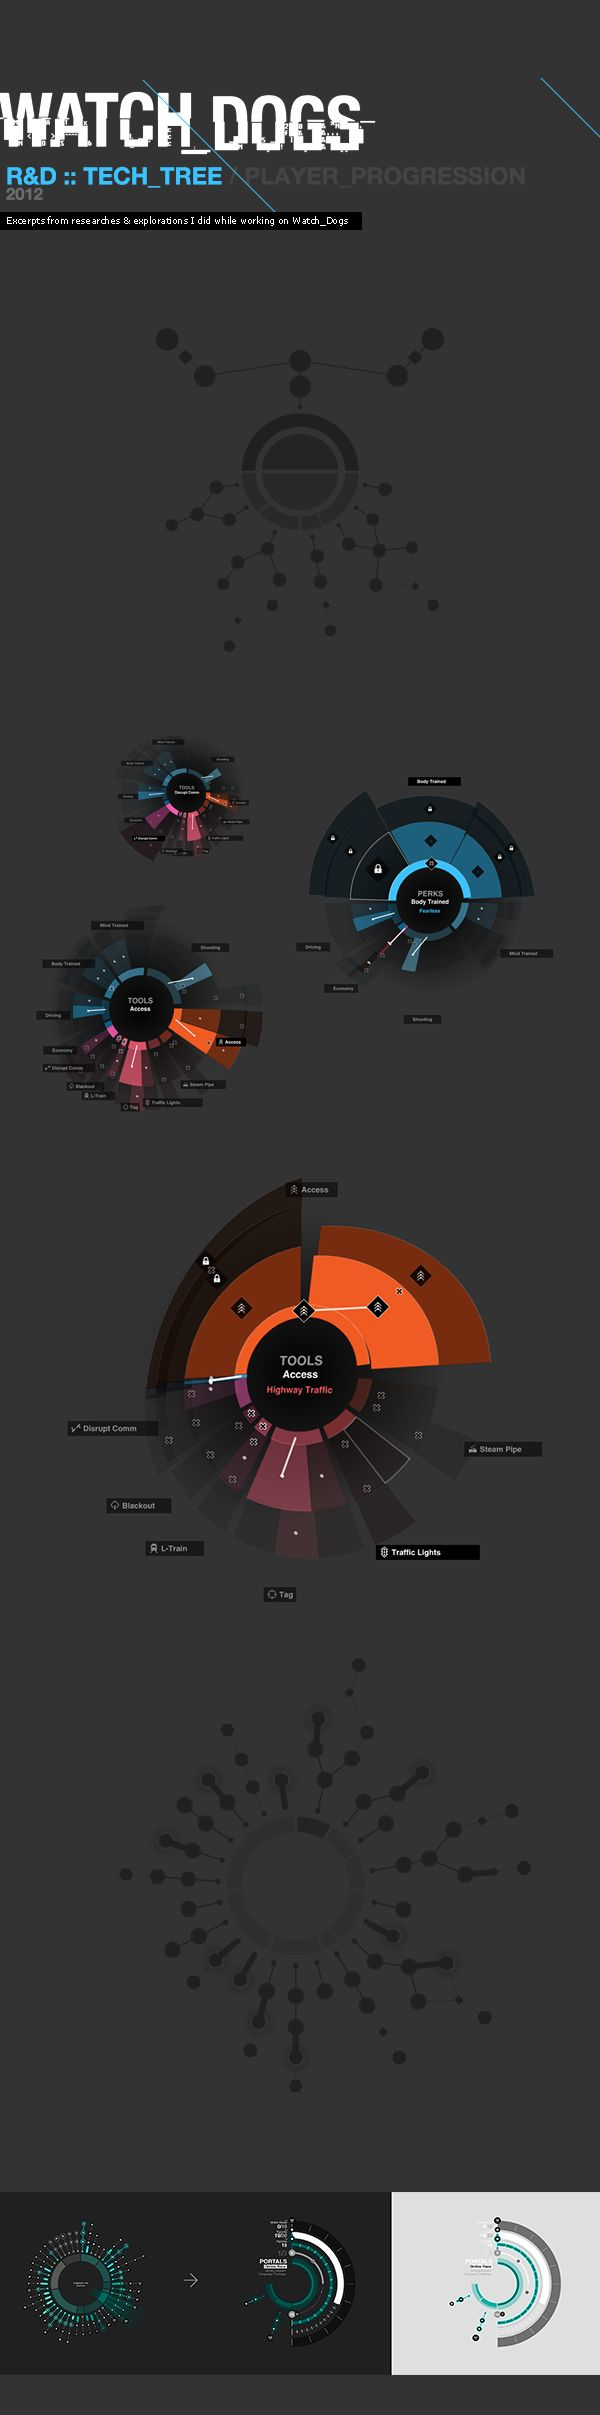 WATCH_DOGS : Tech Tree by Timothe Lapetite, via Behance